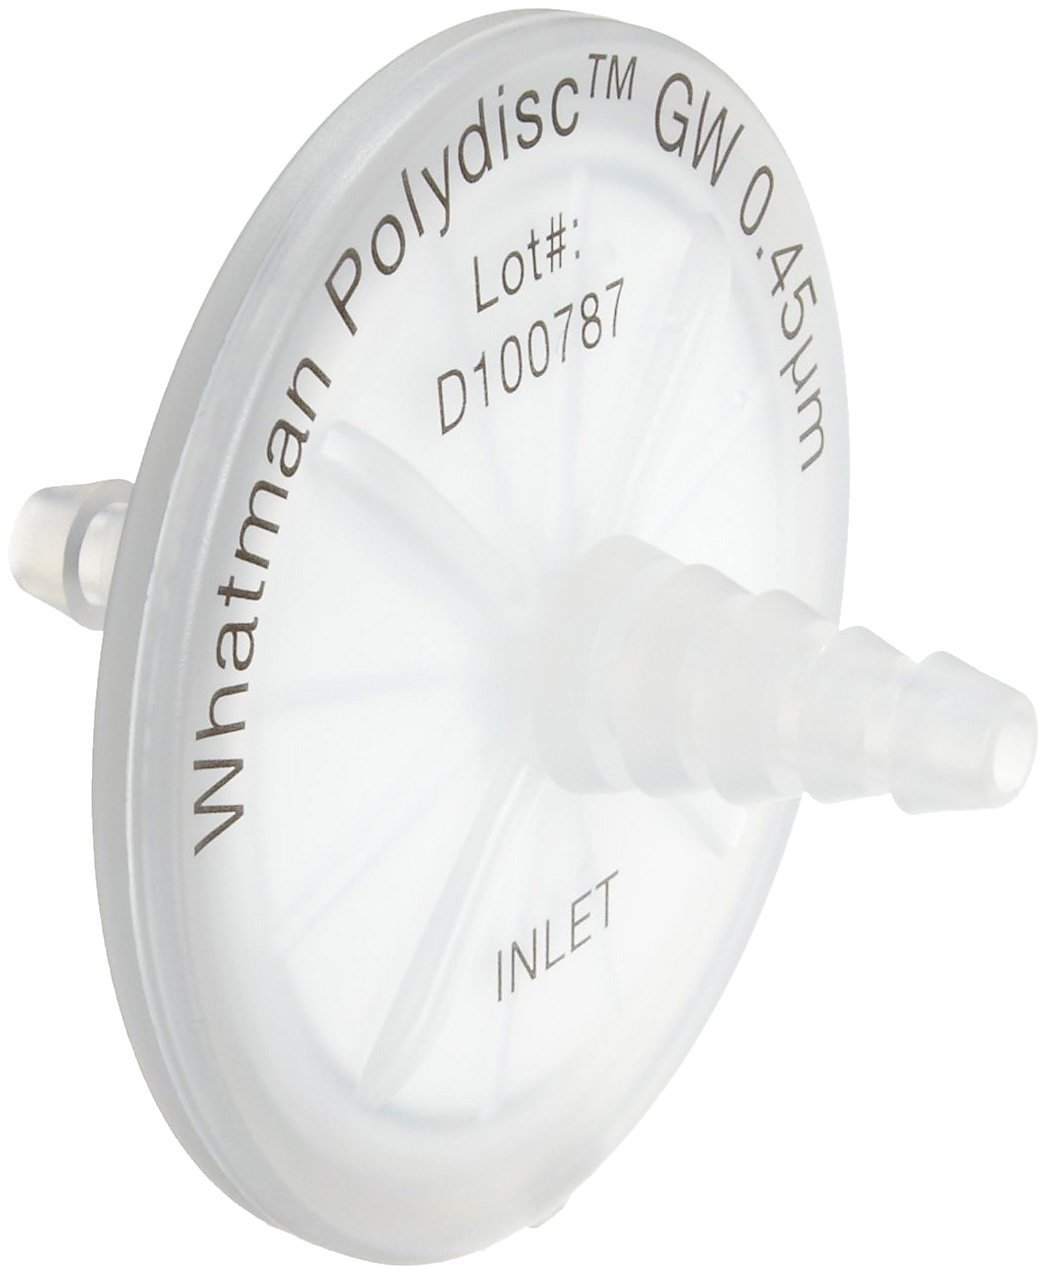 WHA-10463400 0.45 Micron Pack of 20 4.5 bar Maximum Pressure 6 to 14mm Tubing Nozzle Connection Whatman 10463400 Polydisc GW Nylon In-line Filters